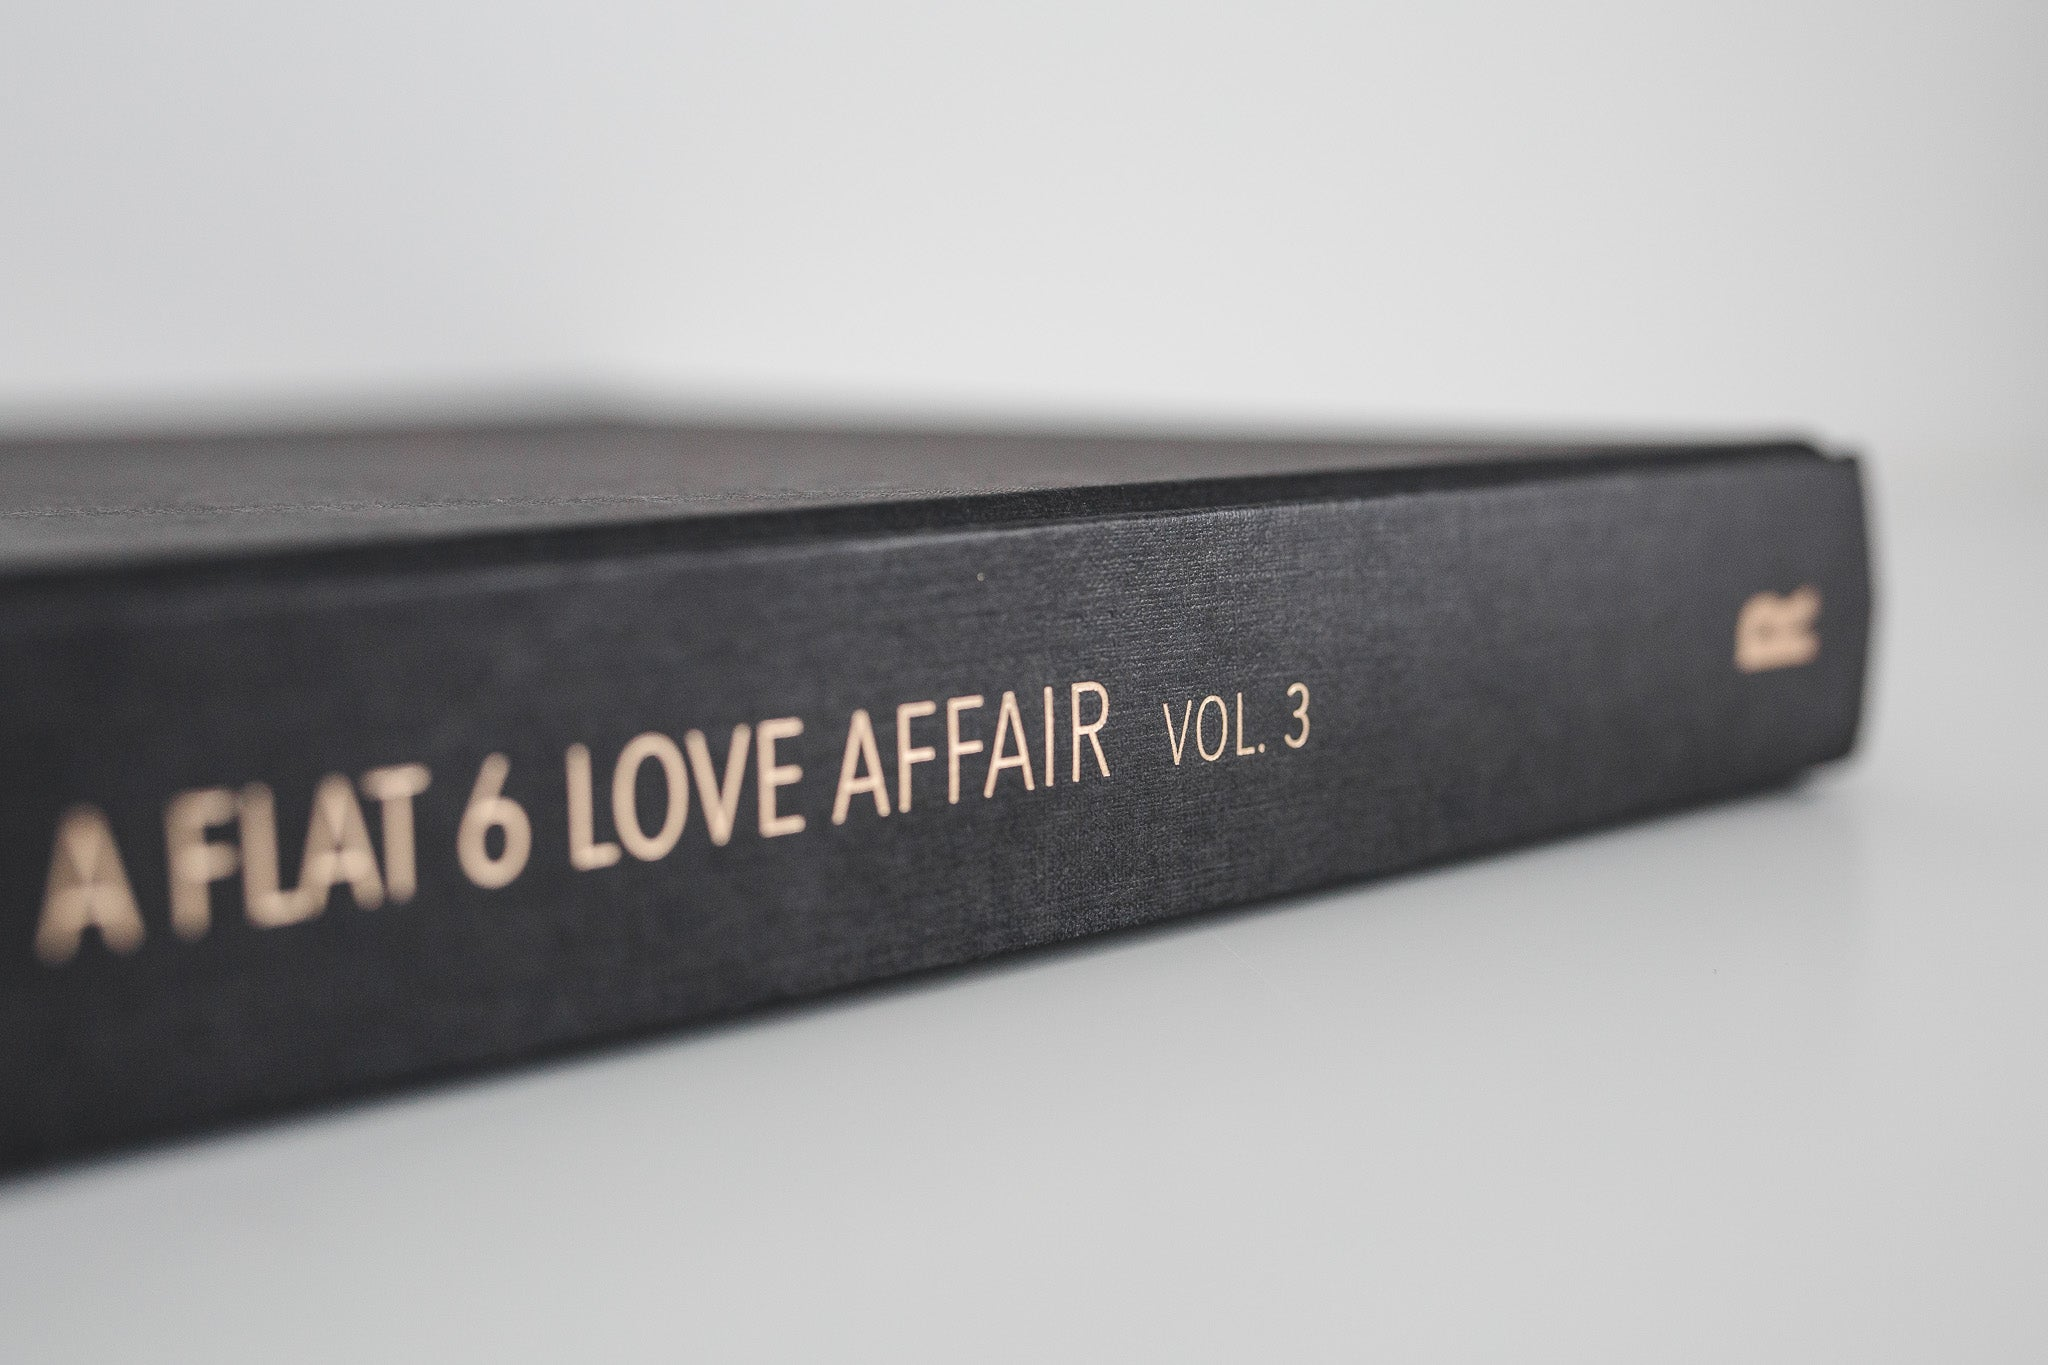 A Flat 6 Love Affair - VOL 3 (SOLD OUT - only available as full set)